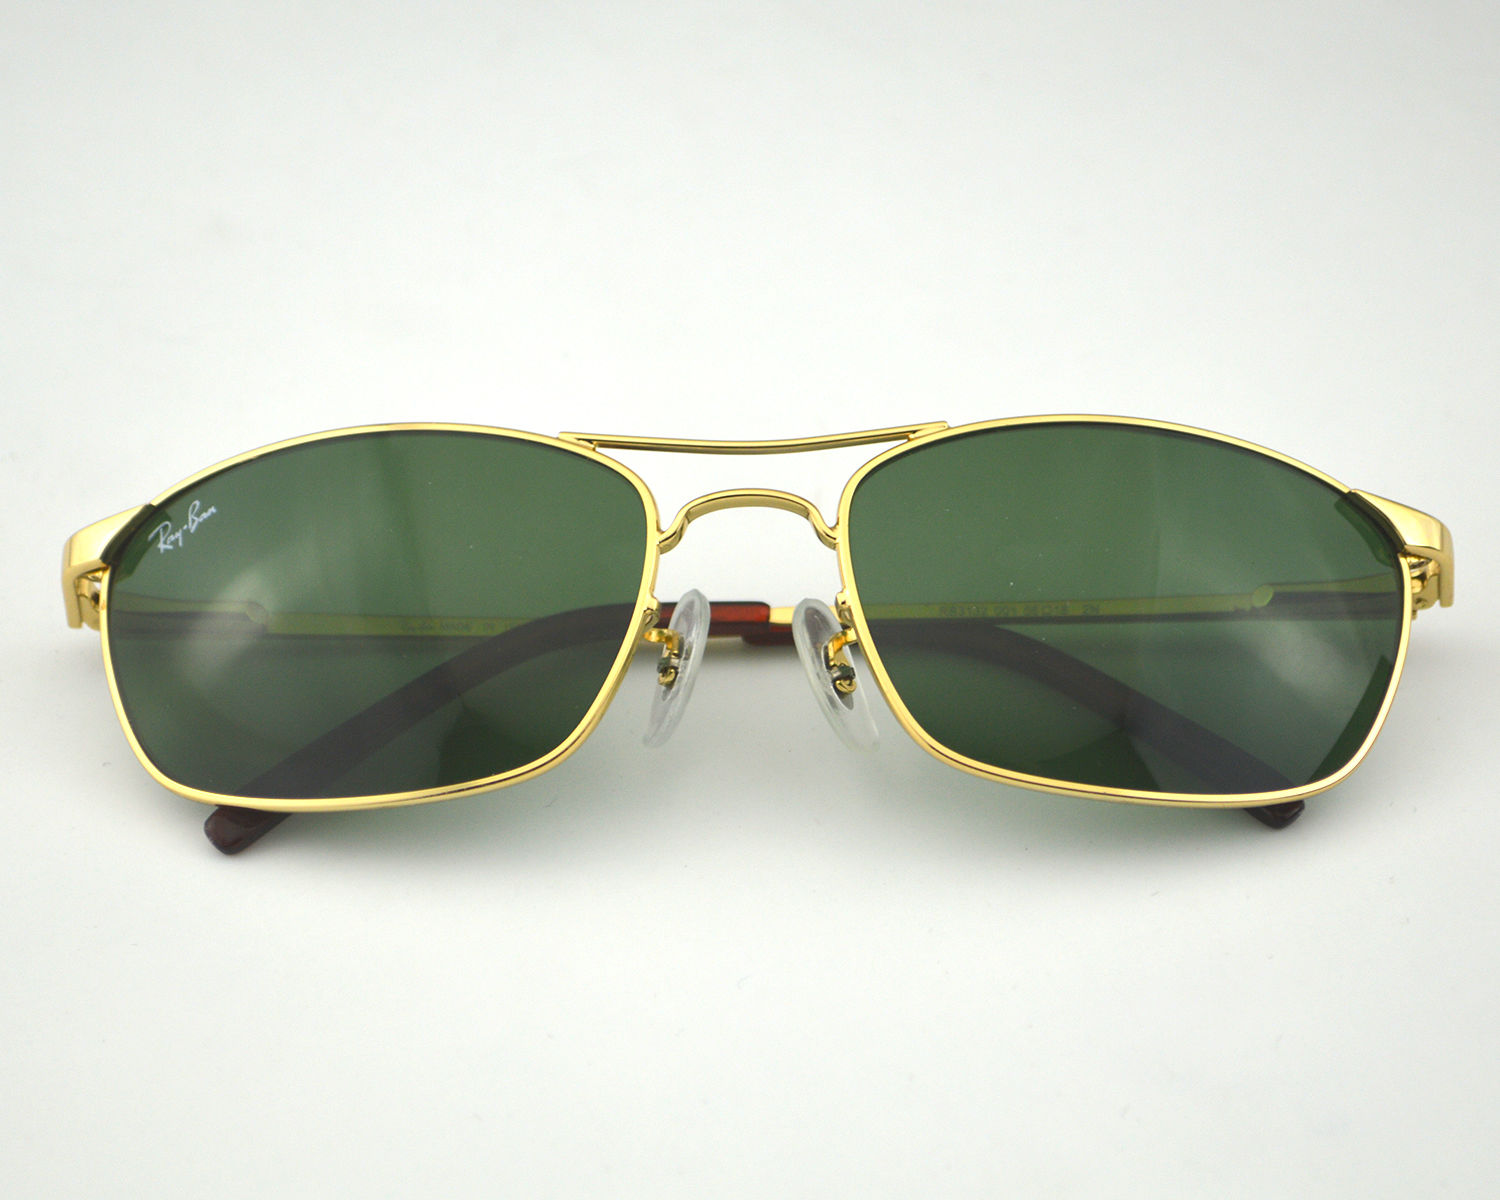 Ray-Ban RB3132 001 Gold Metal Frame/Green Classic Lens